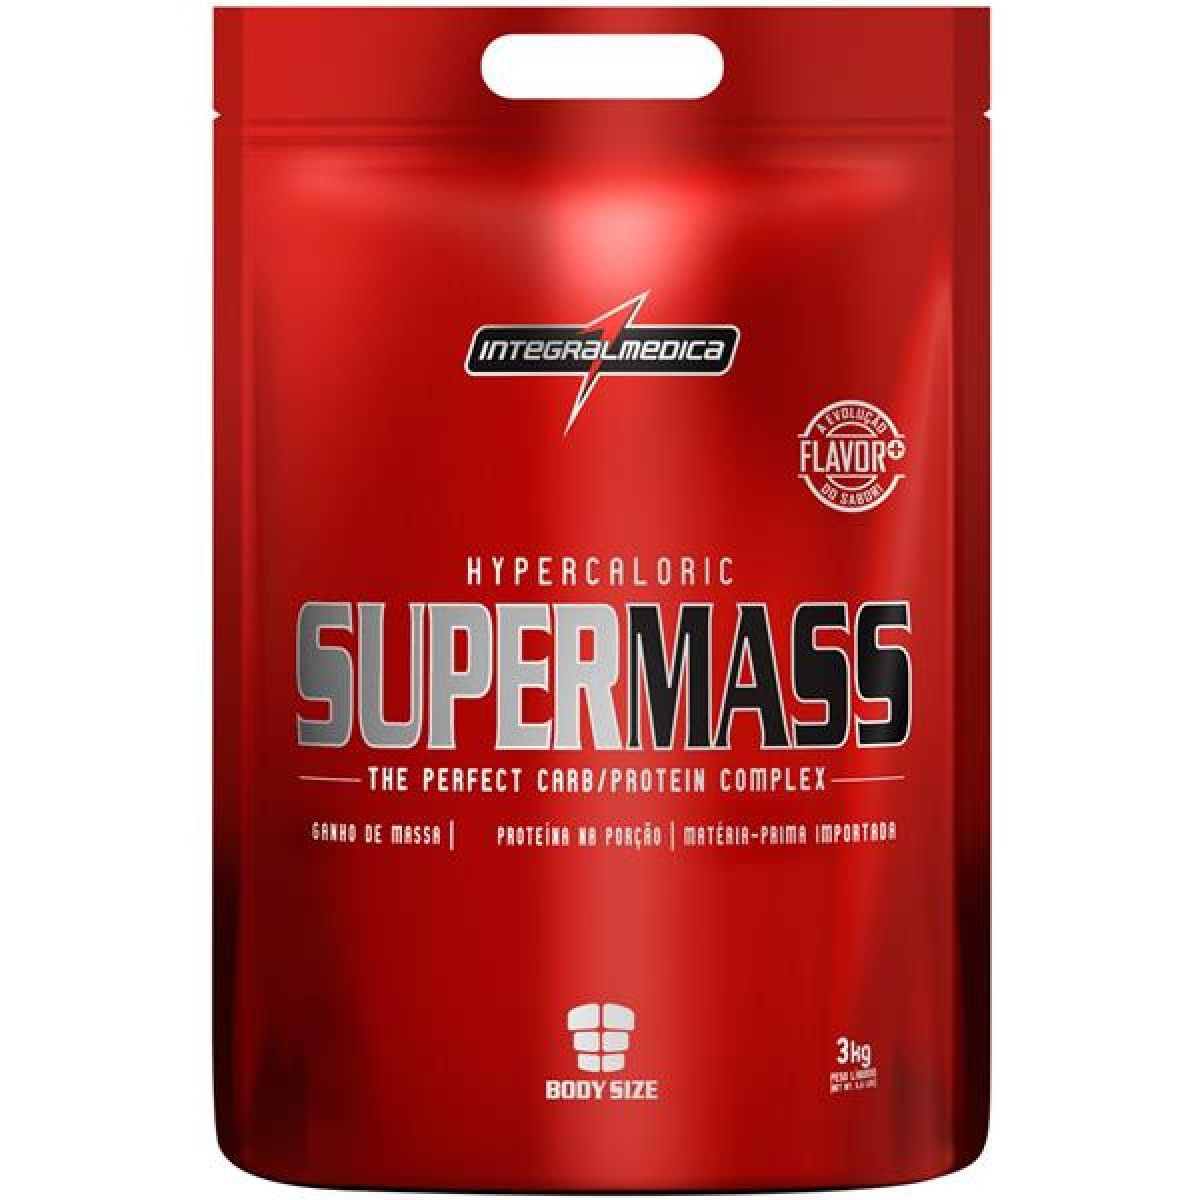 Super Mass IntegralMedica - 3kg